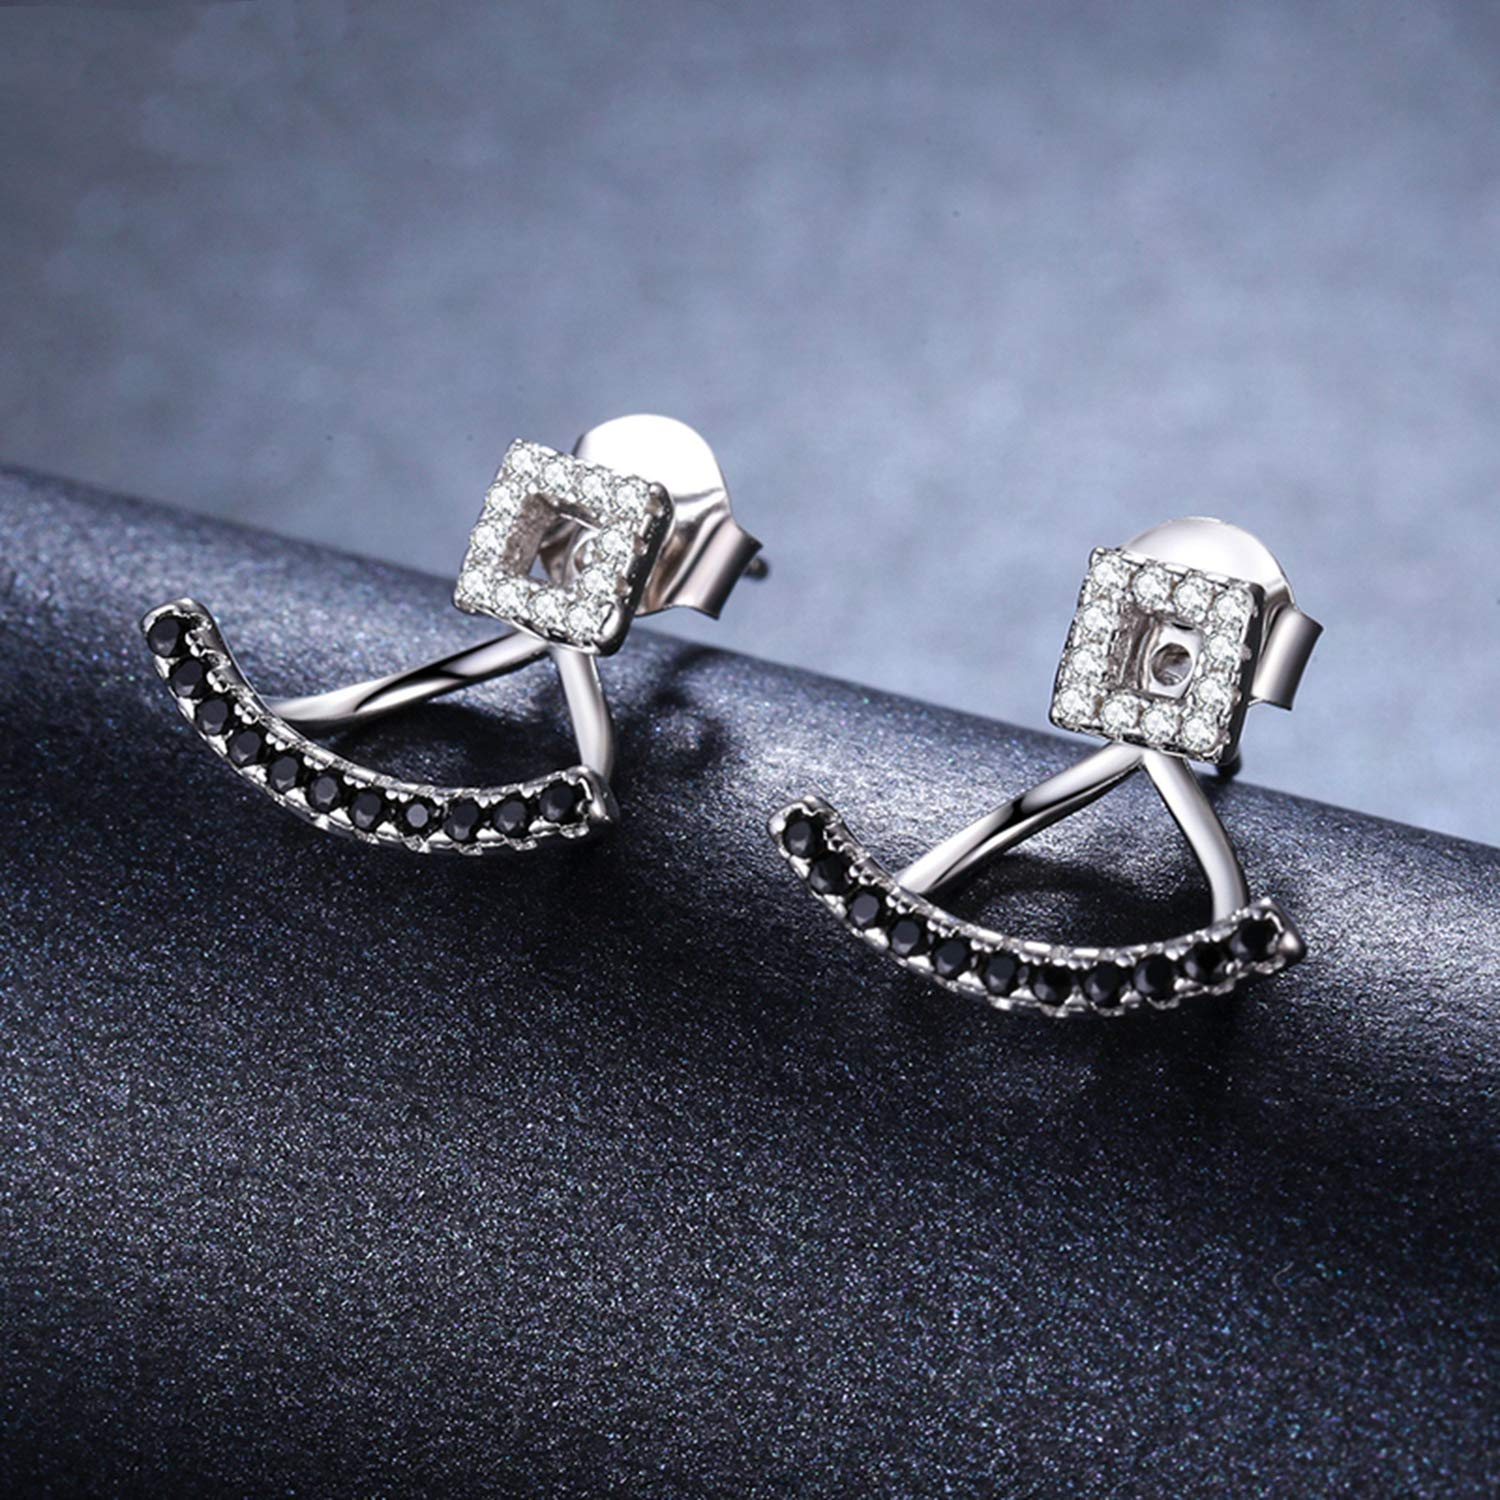 Ashley-OU 925 Sterling Silver Jewelry Engagement Stud Earrings Female Smile Boucles doreilles I020 A